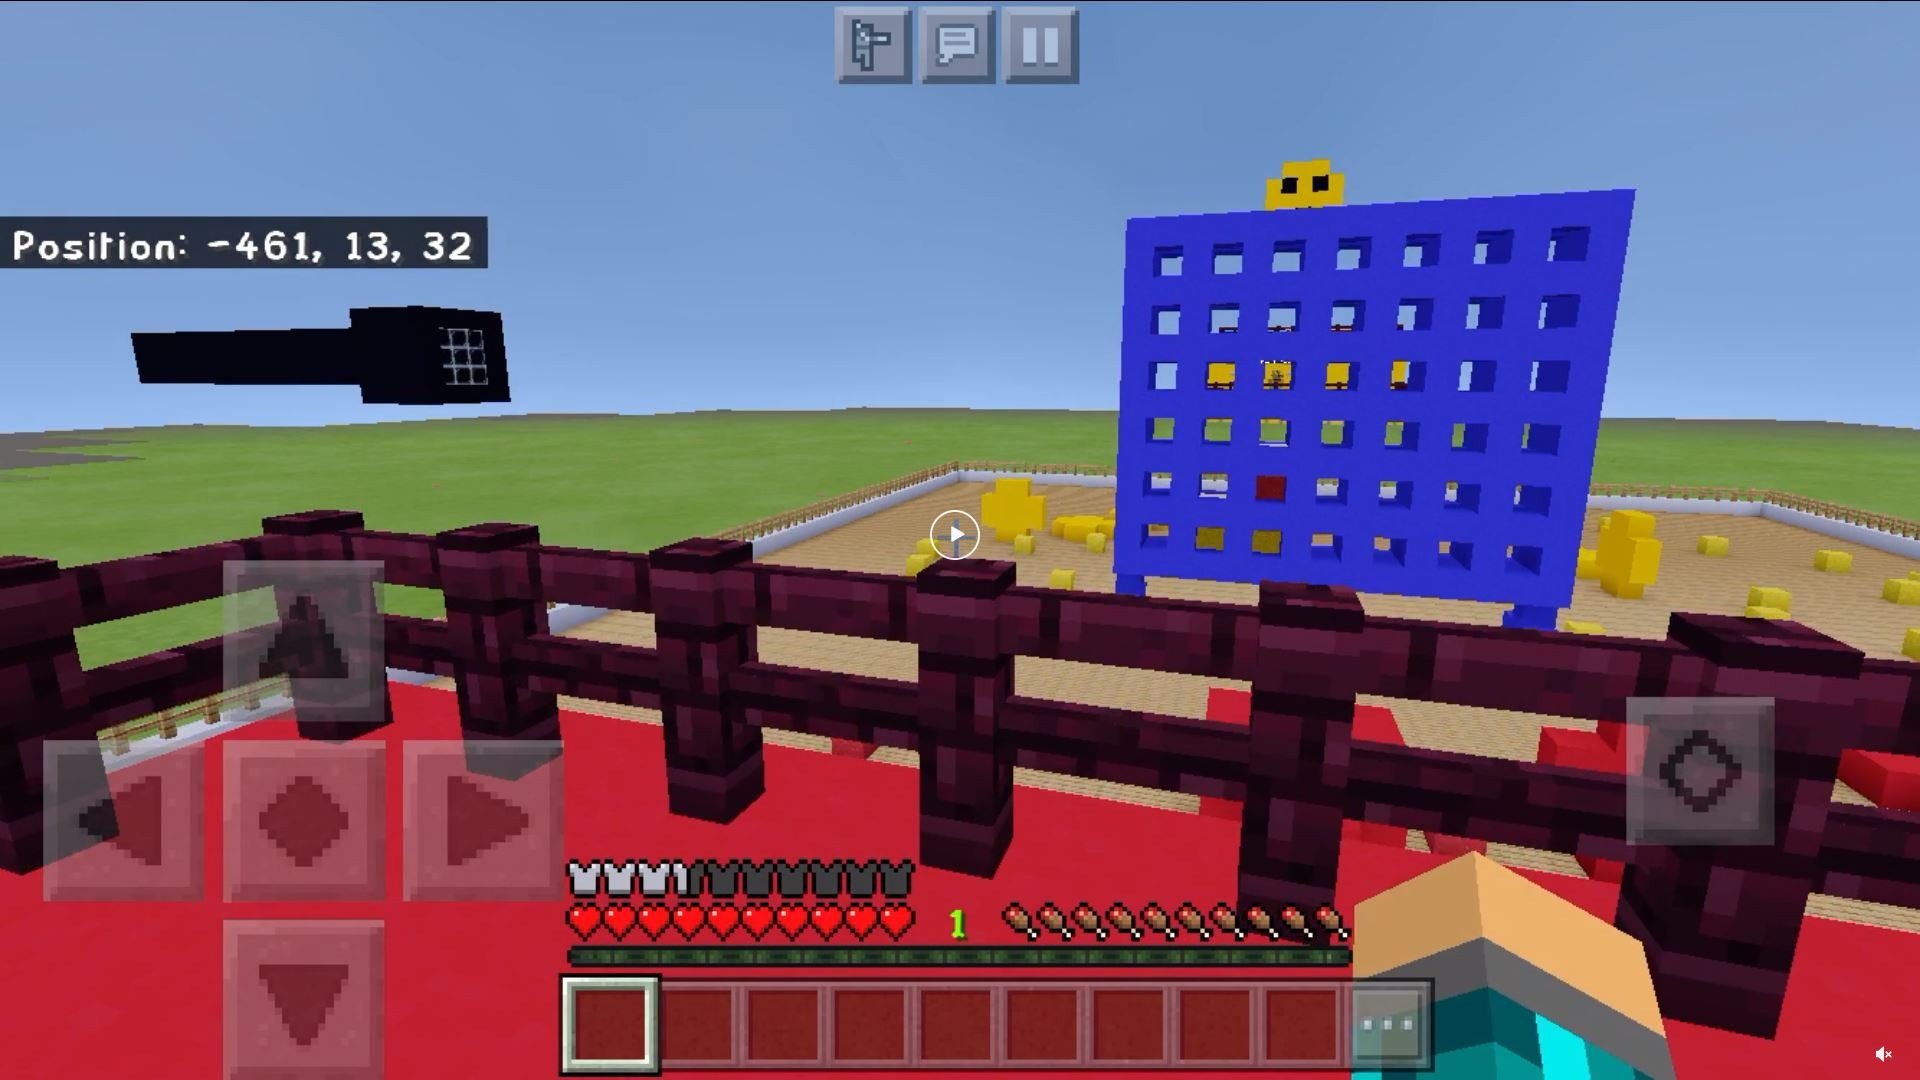 Redditor LilDennnn Created The Classic Game Of Connect 4 in Minecraft Bedrock Edition